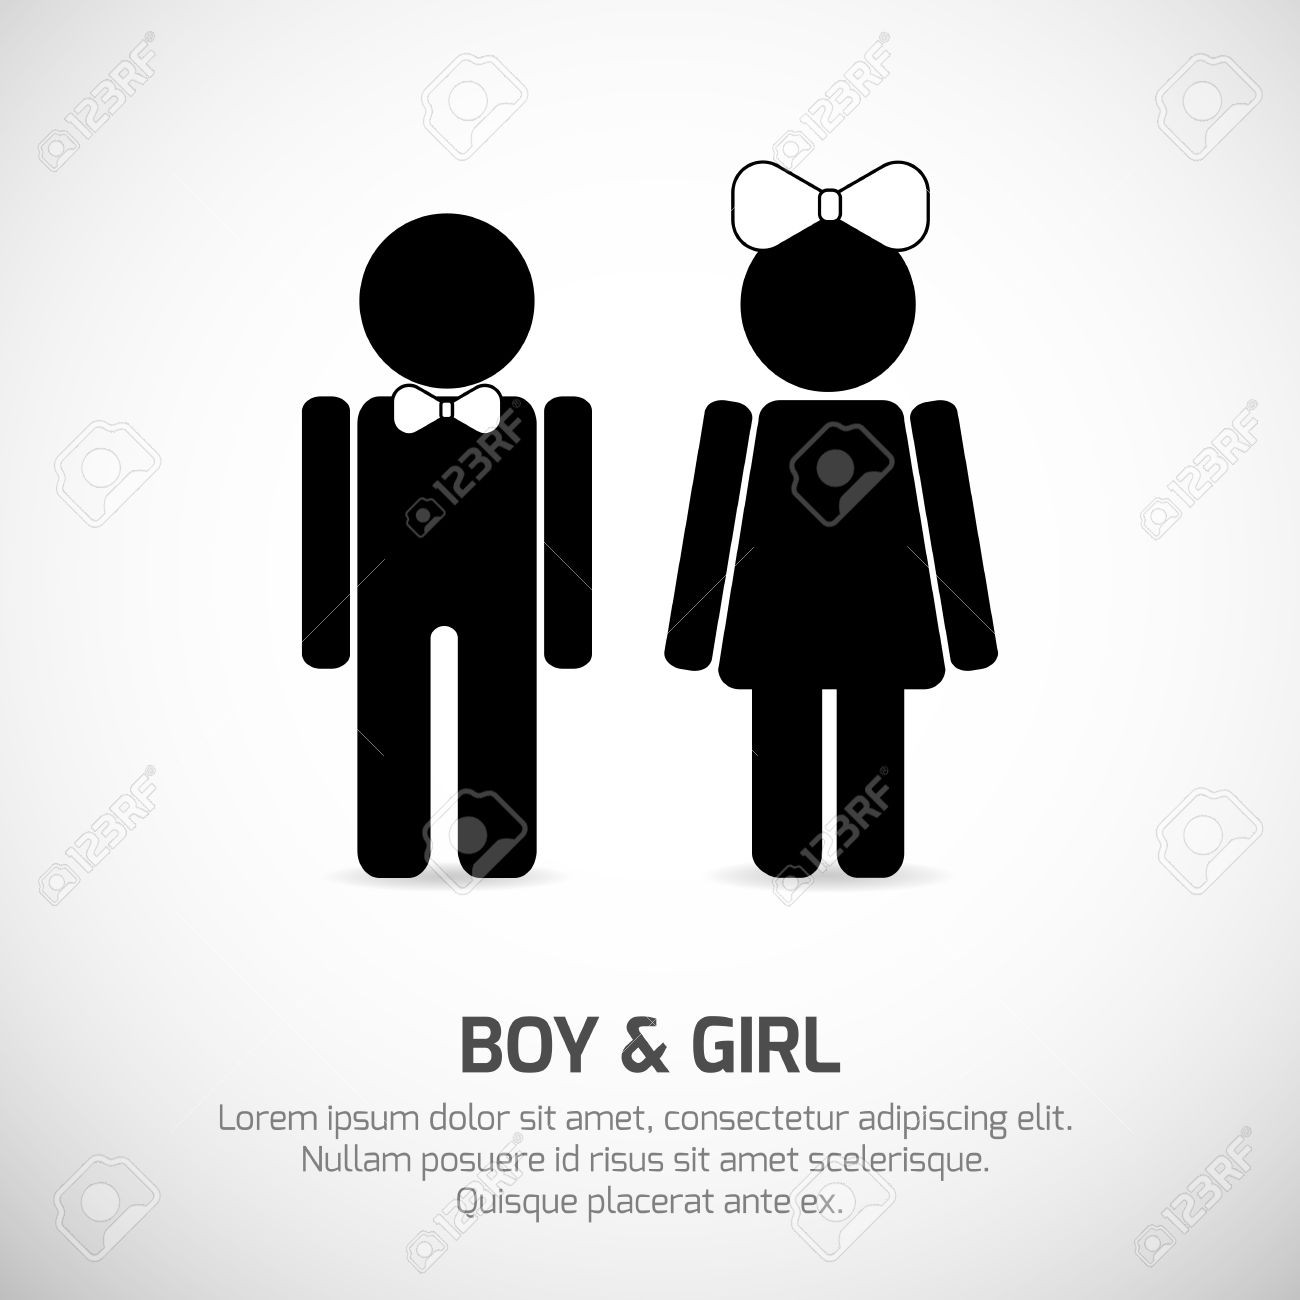 Boy and Girl symbols  Vector signs for stecifying gender  Can be used for  restroom. Boy And Girl Symbols  Vector Signs For Stecifying Gender  Can